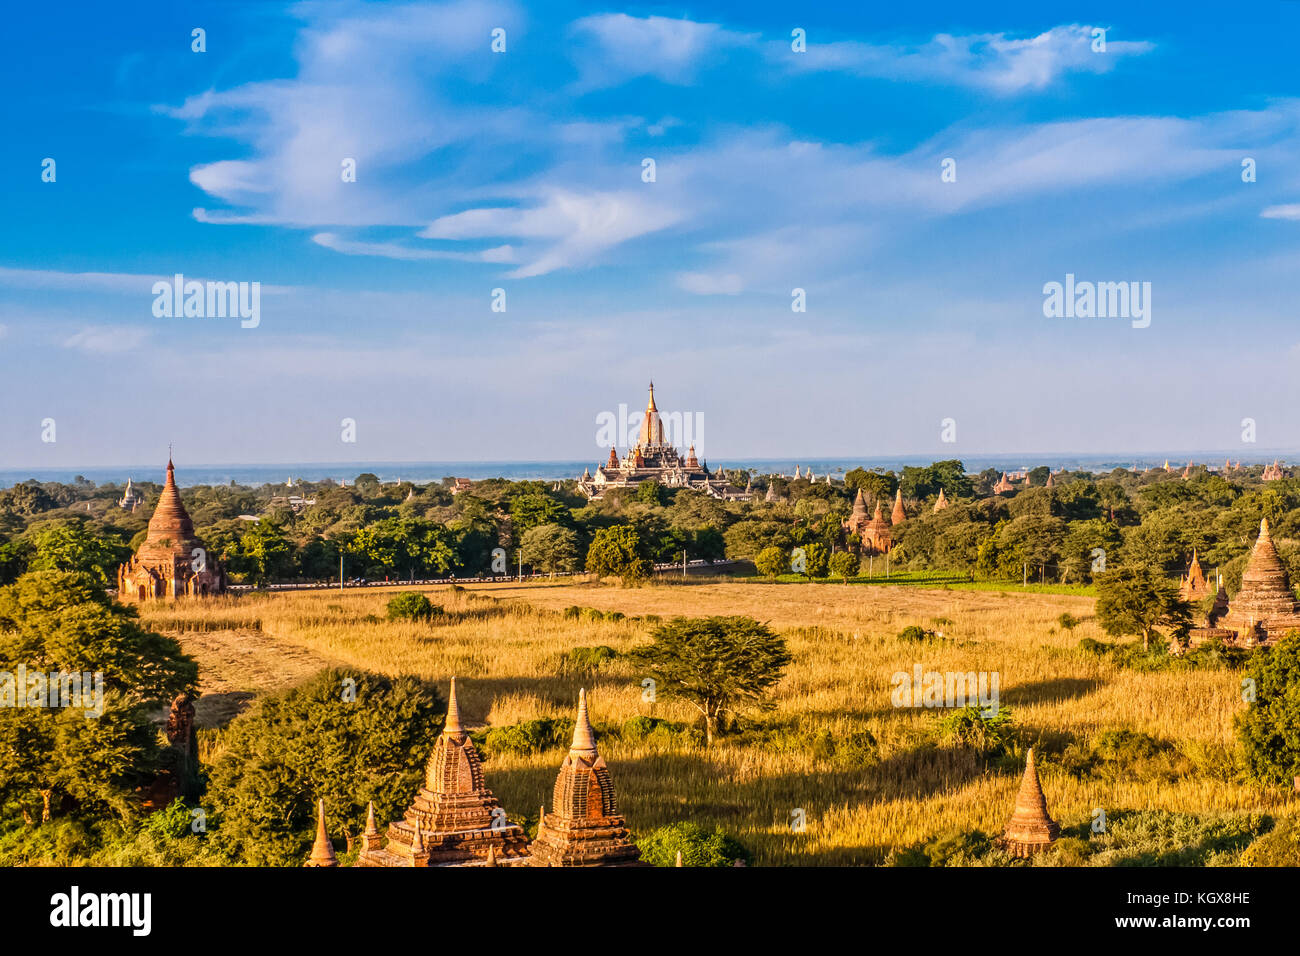 Pagodas of Old Bagan, Myanmar - Stock Image